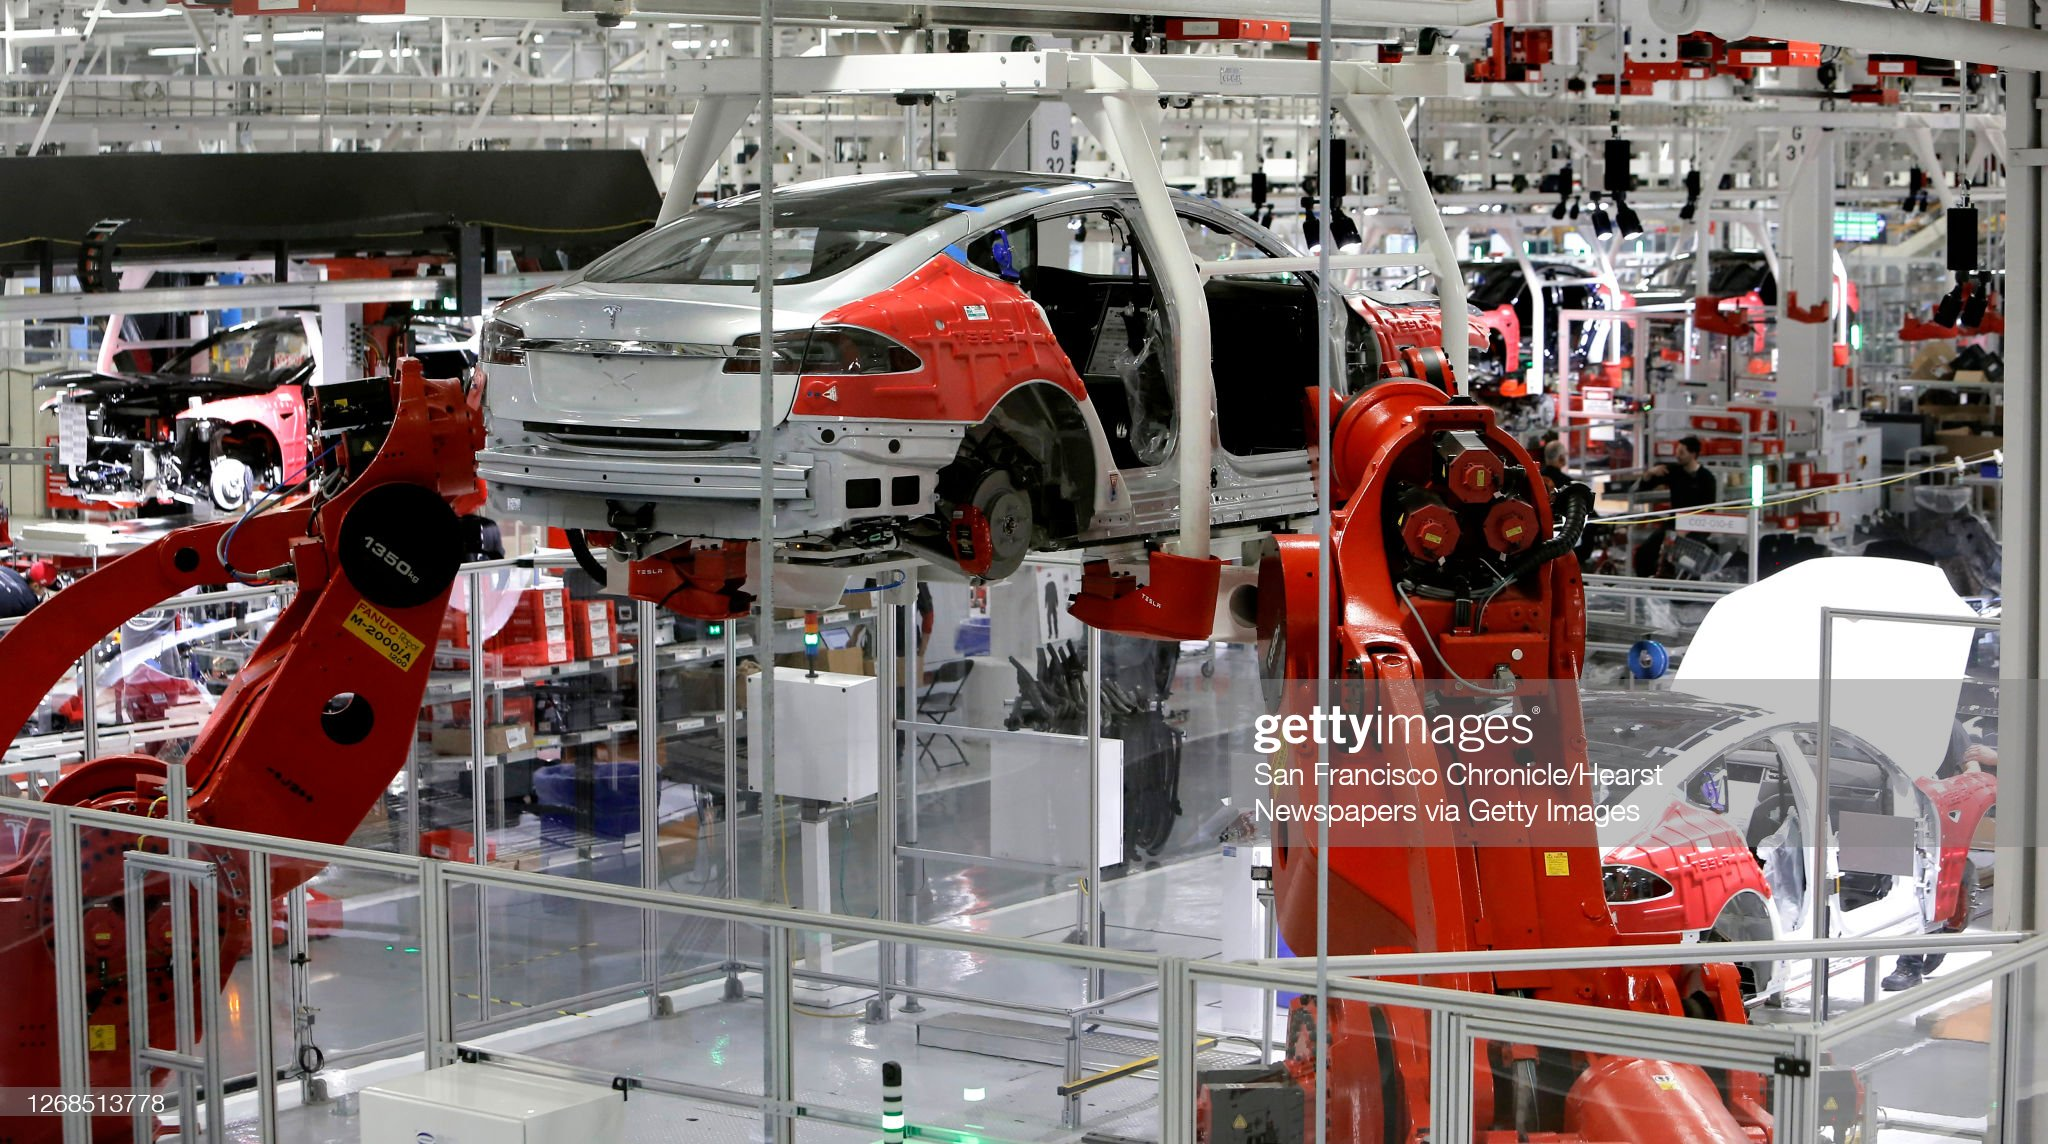 Tesla cars are moved through the assembly line by giant robot arms at Tesla Motors, California's only full-scale auto manufacturing plant, as seen on Thurs. Feb. 19, 2015, in Fremont, Calif. : News Photo